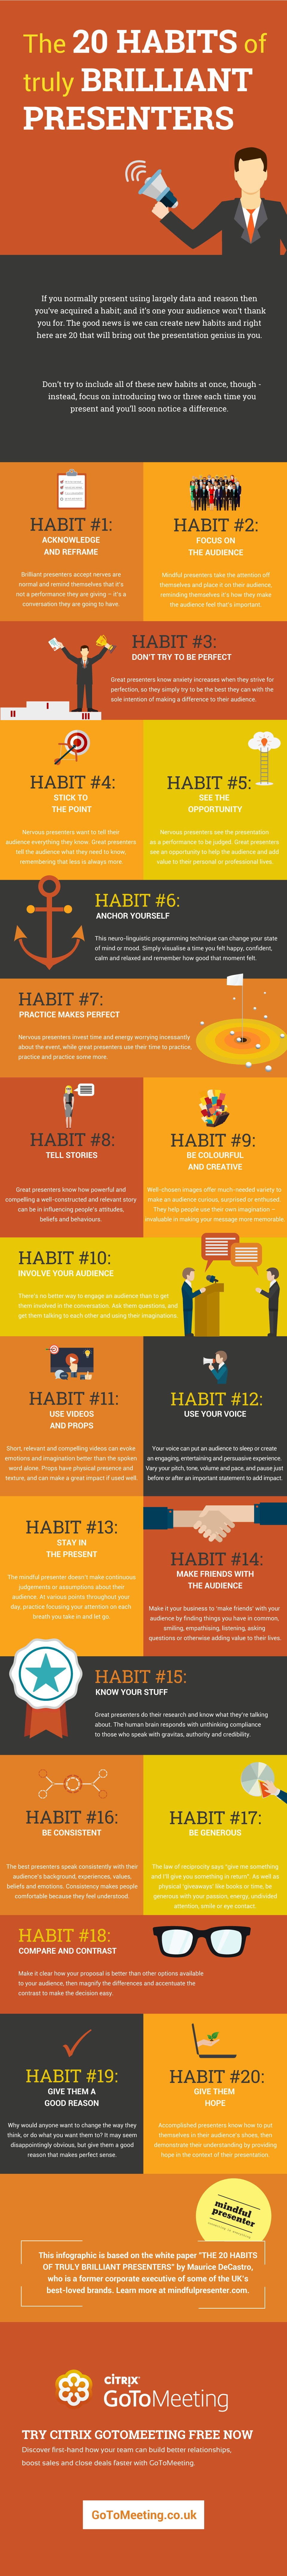 20 Habits οf Truly Brilliant Presenters Infographic